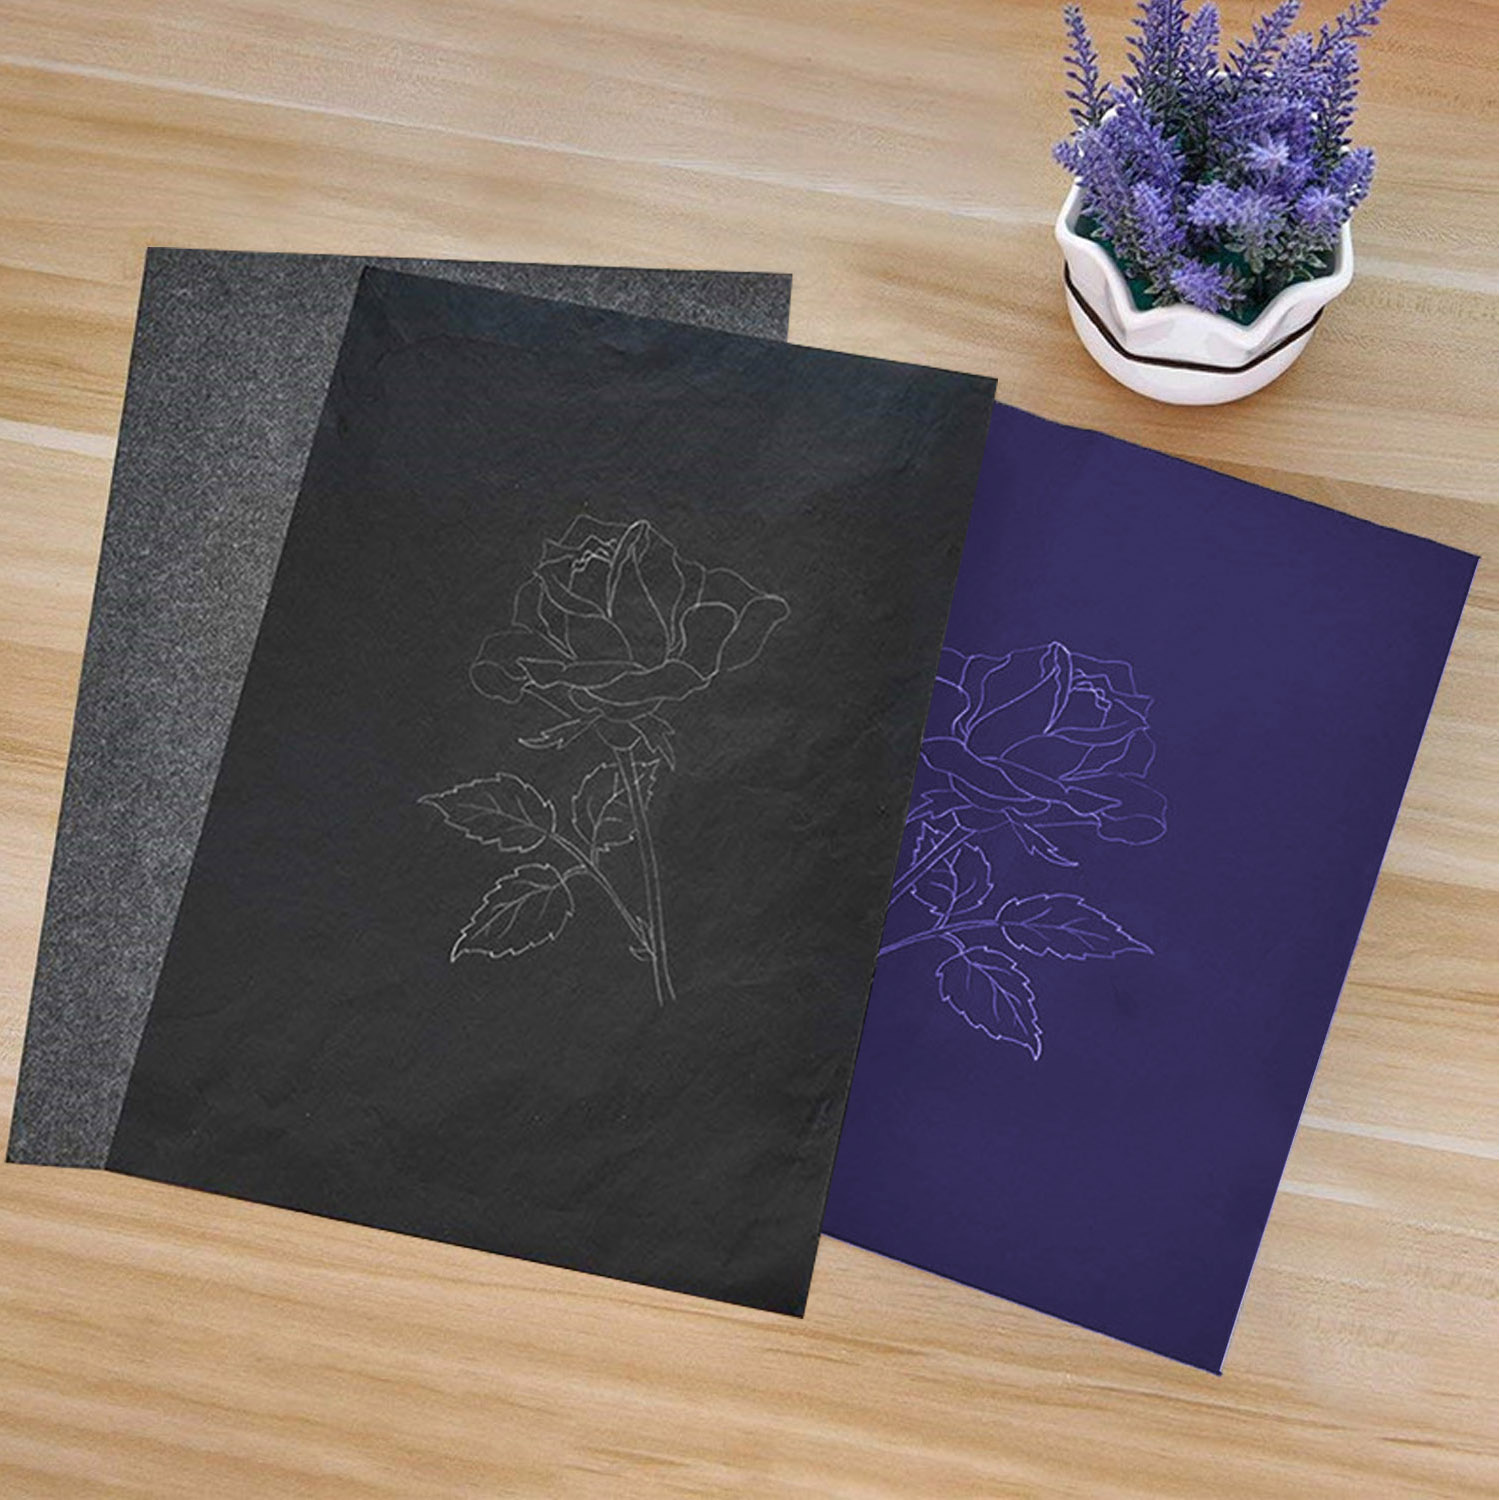 100 Sheet A4 Size Reusable Carbon Tracing Transfer Paper For Office School Home Canvas Wood Glass Metal Ceramic